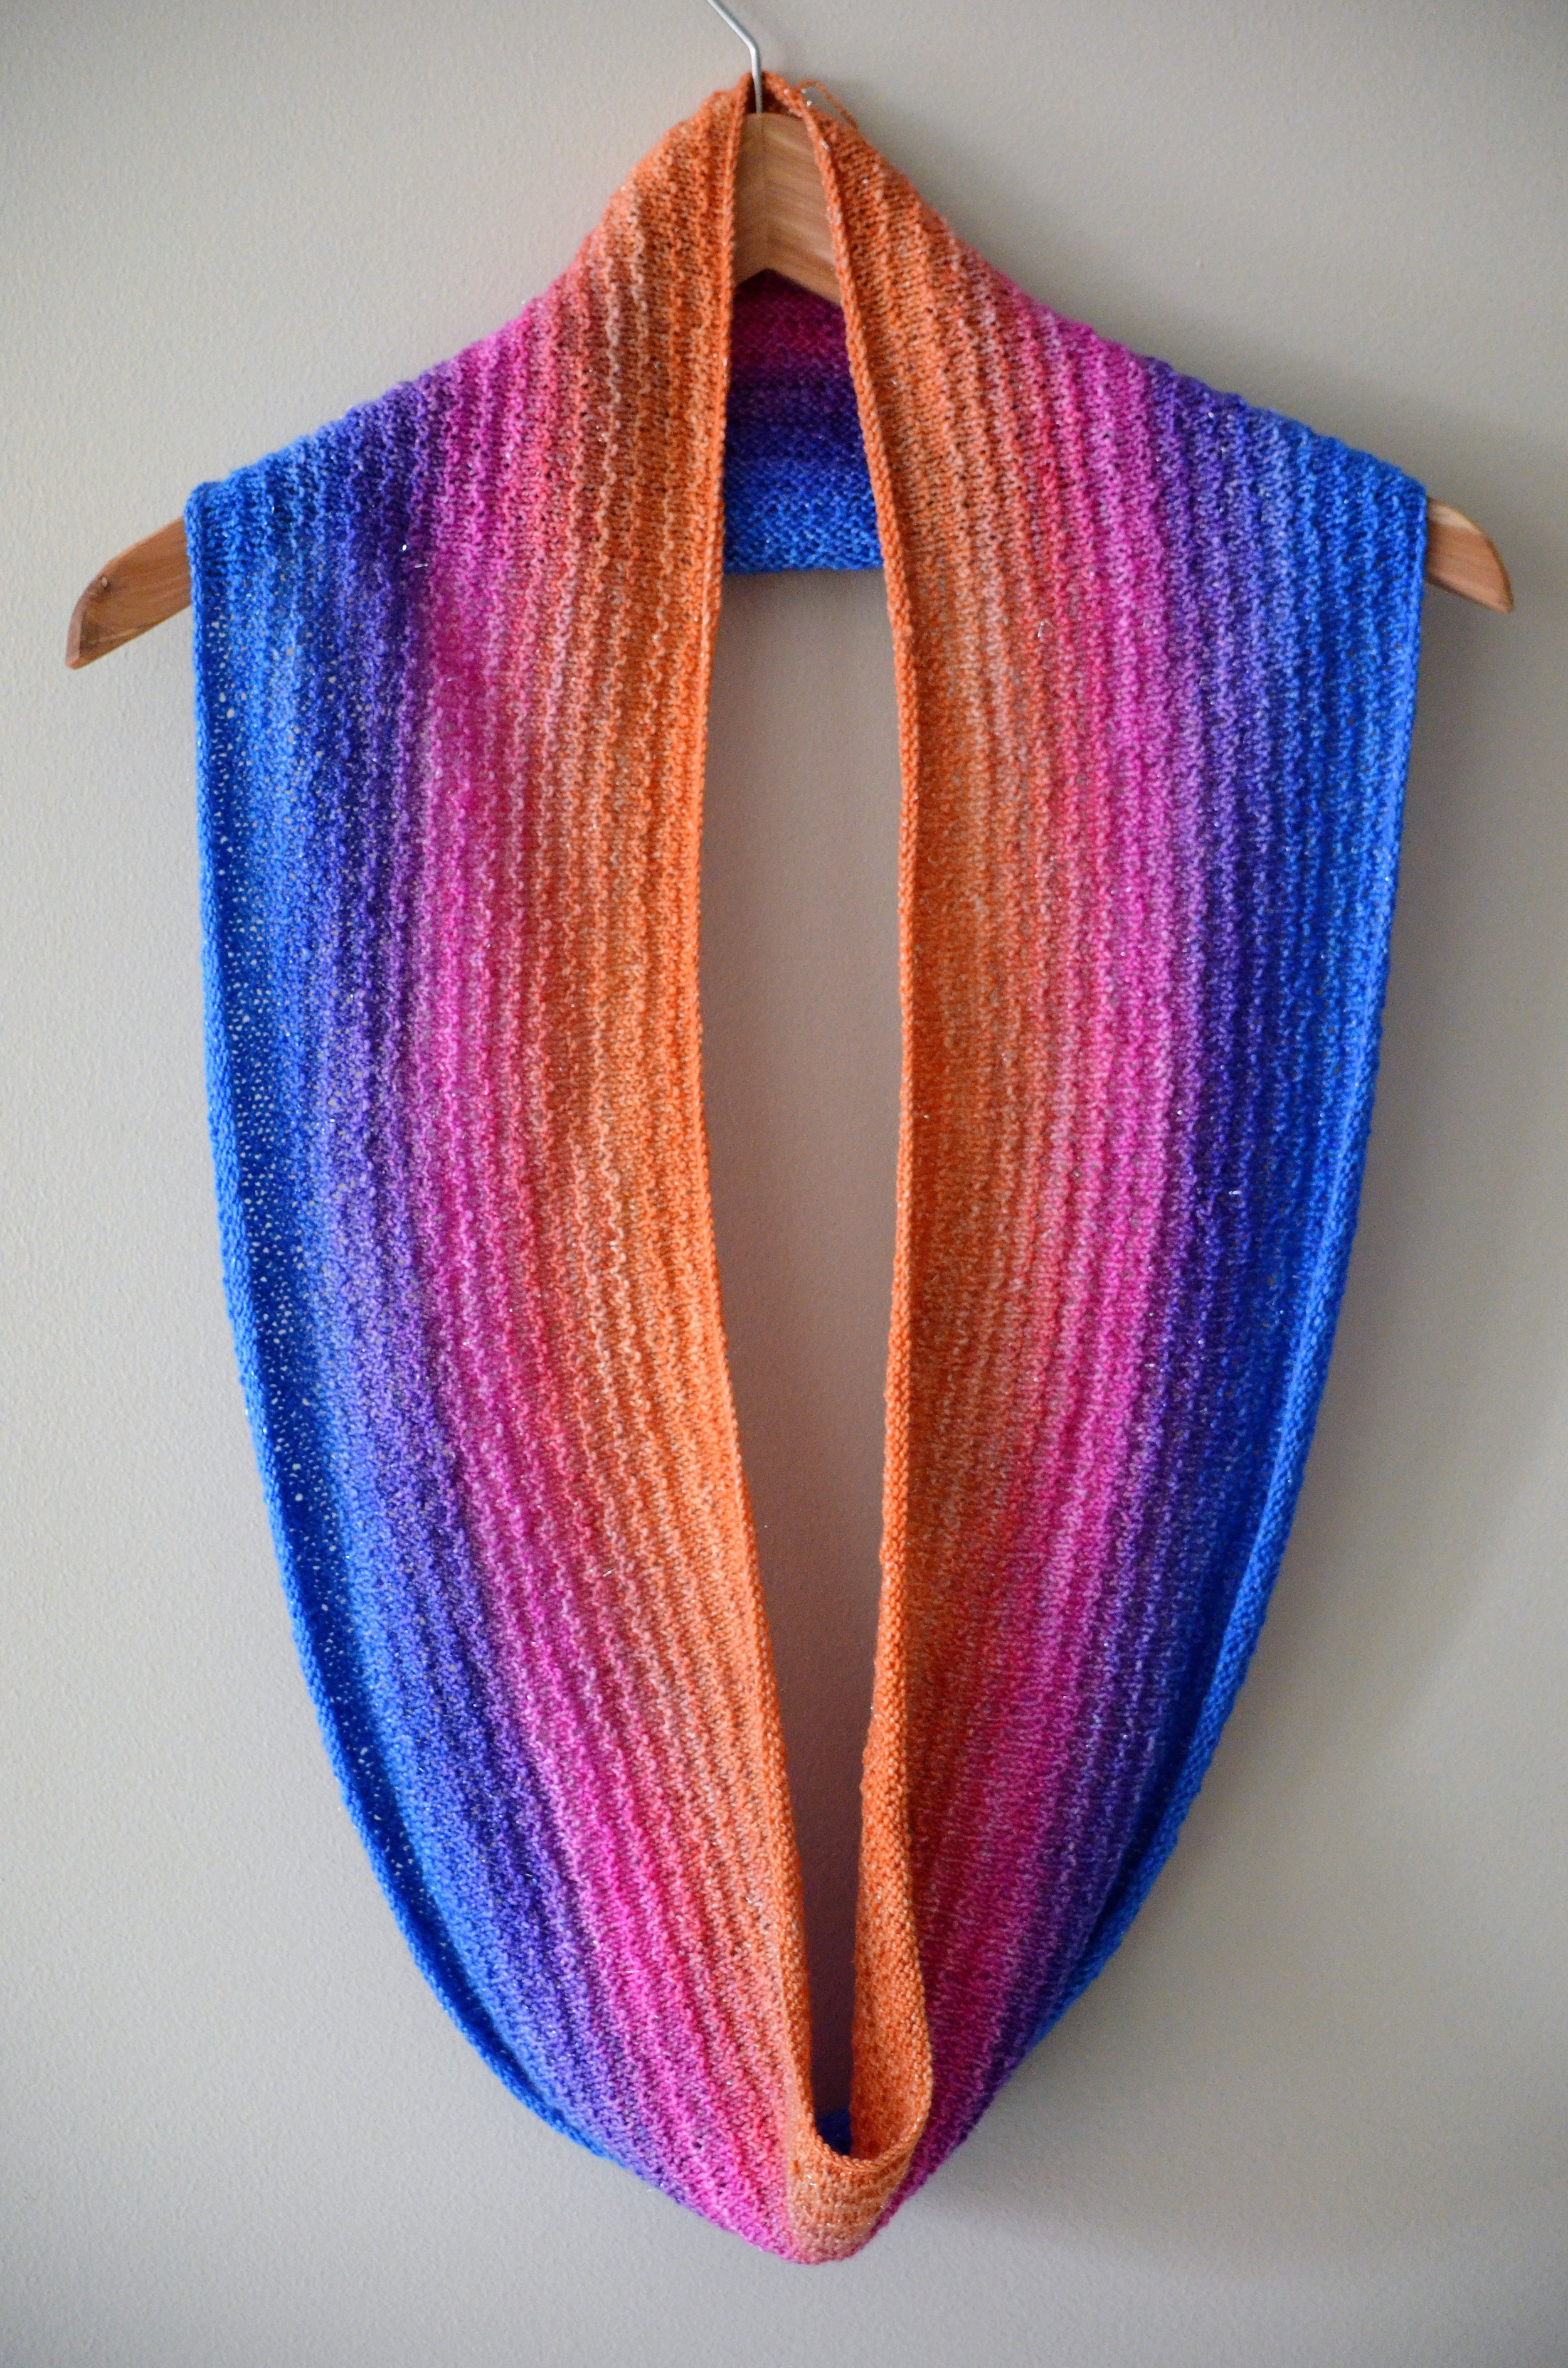 Capitol Hill Cowl Scarf Knitting Pattern / Warporweft.com